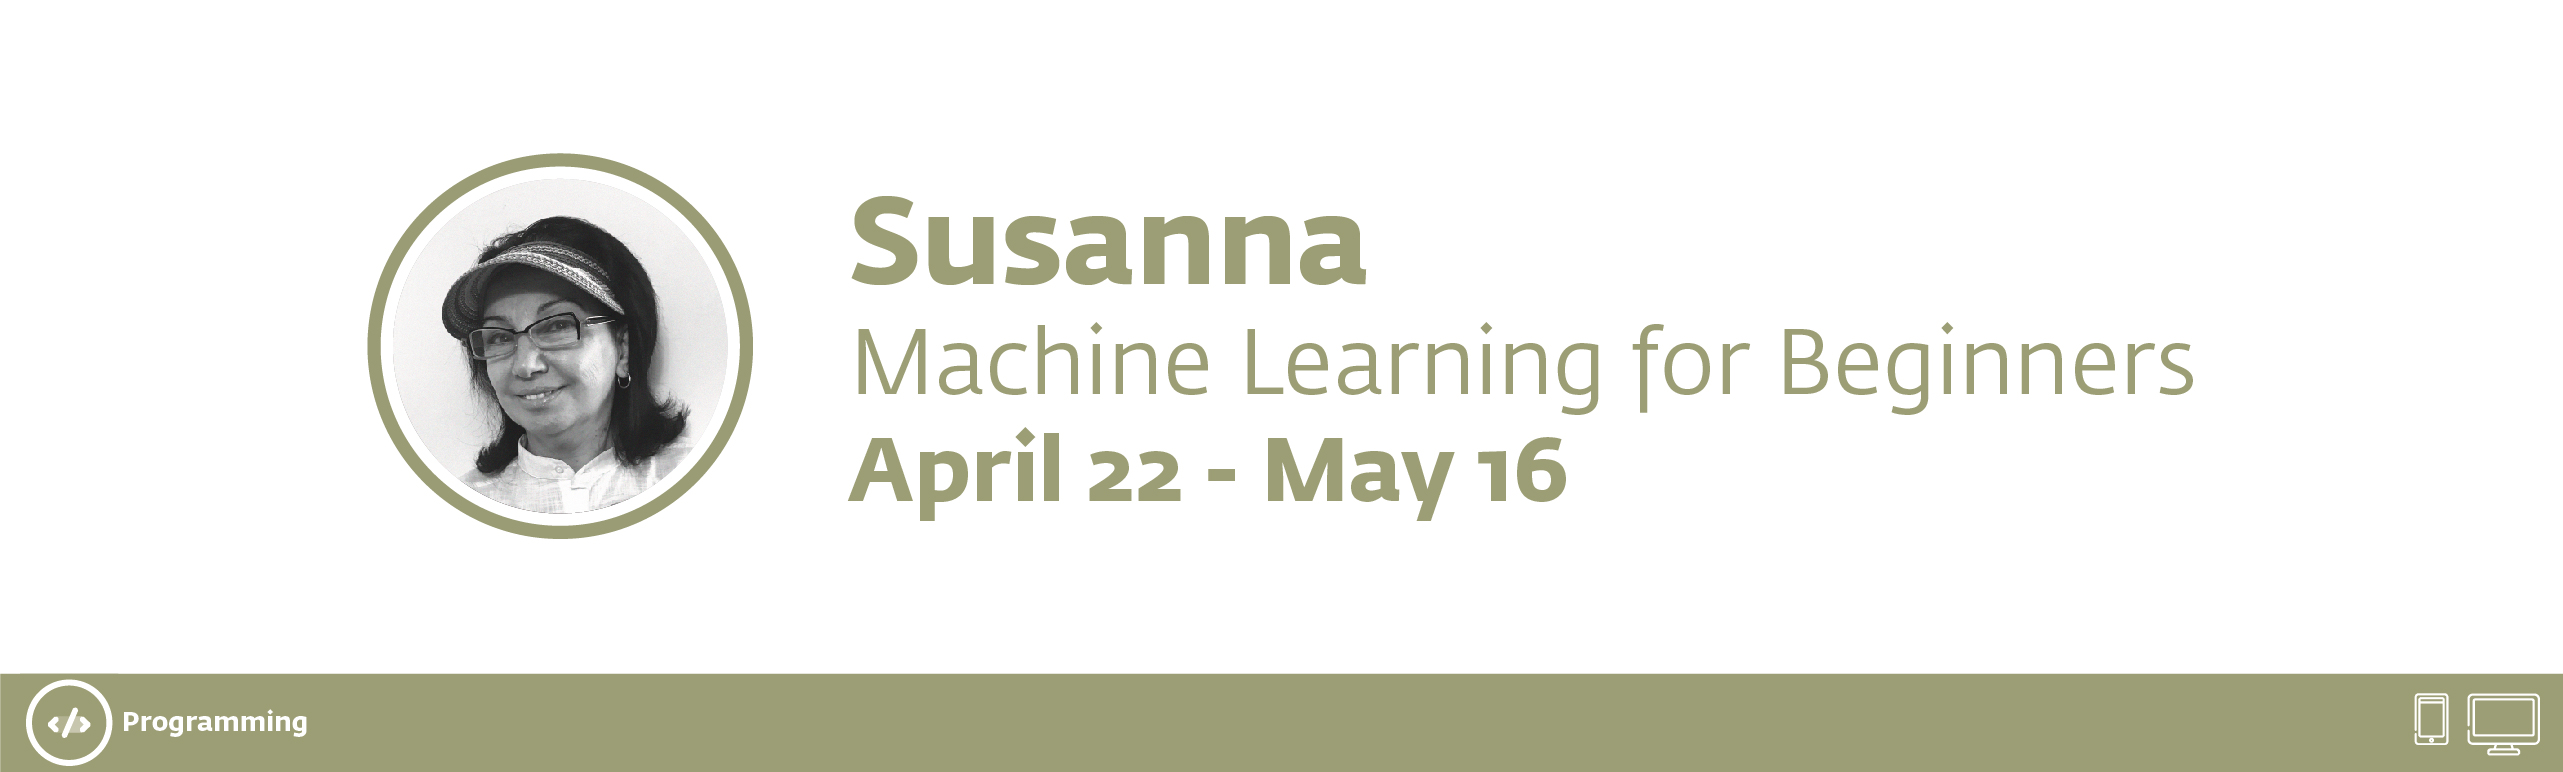 each page 1 12 - Machine Learning for Beginners